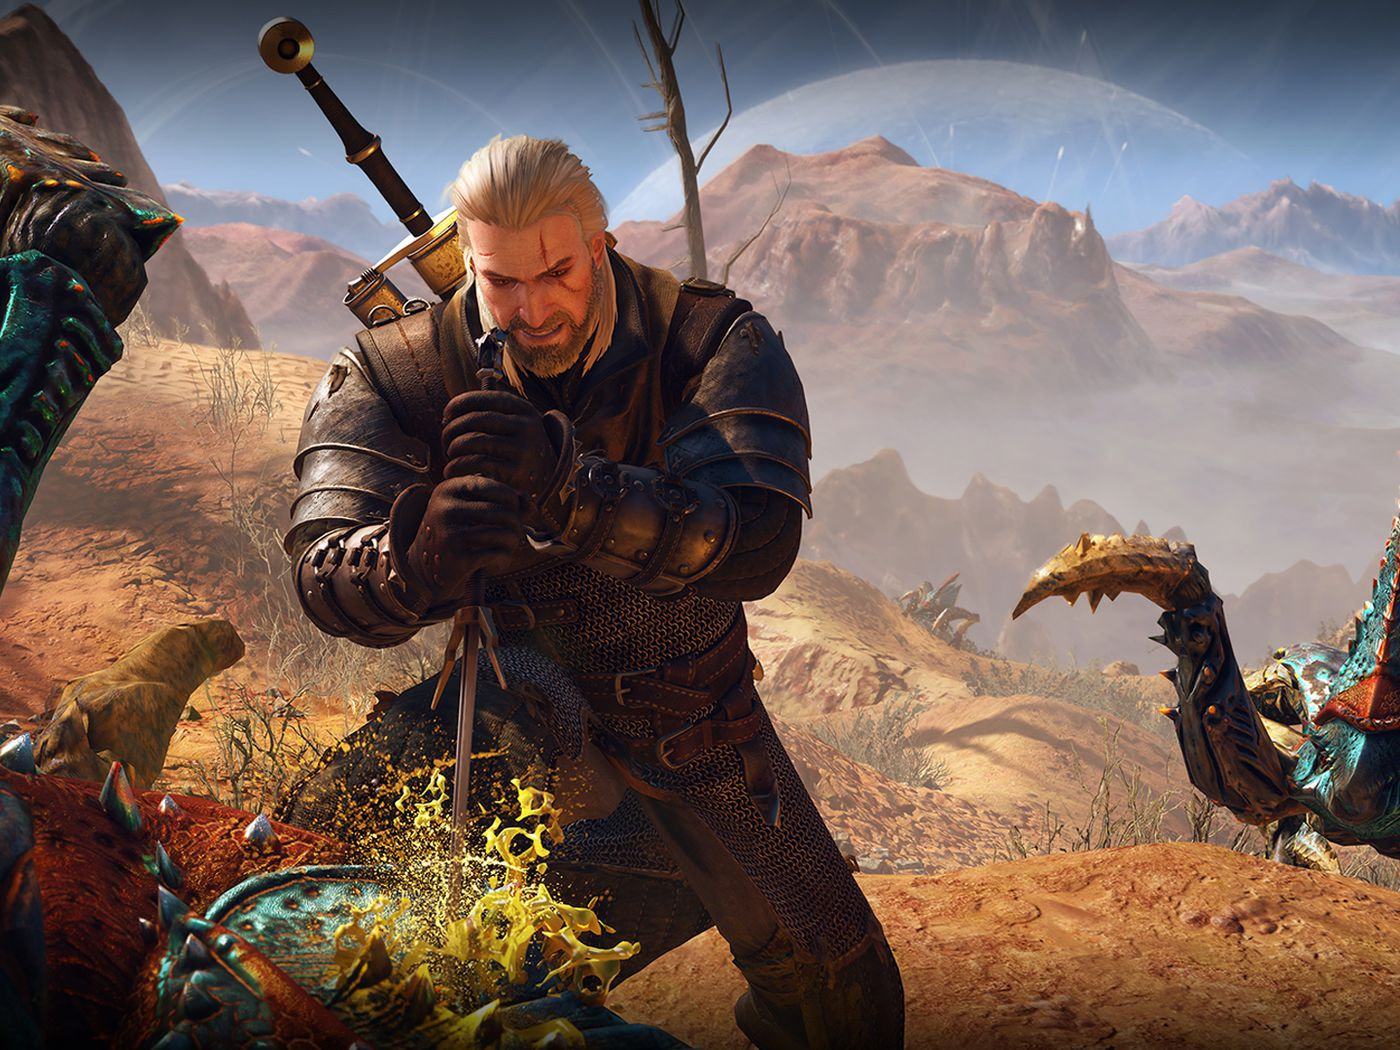 The Witcher 3's Xbox One X update adds 60 fps support, and it's